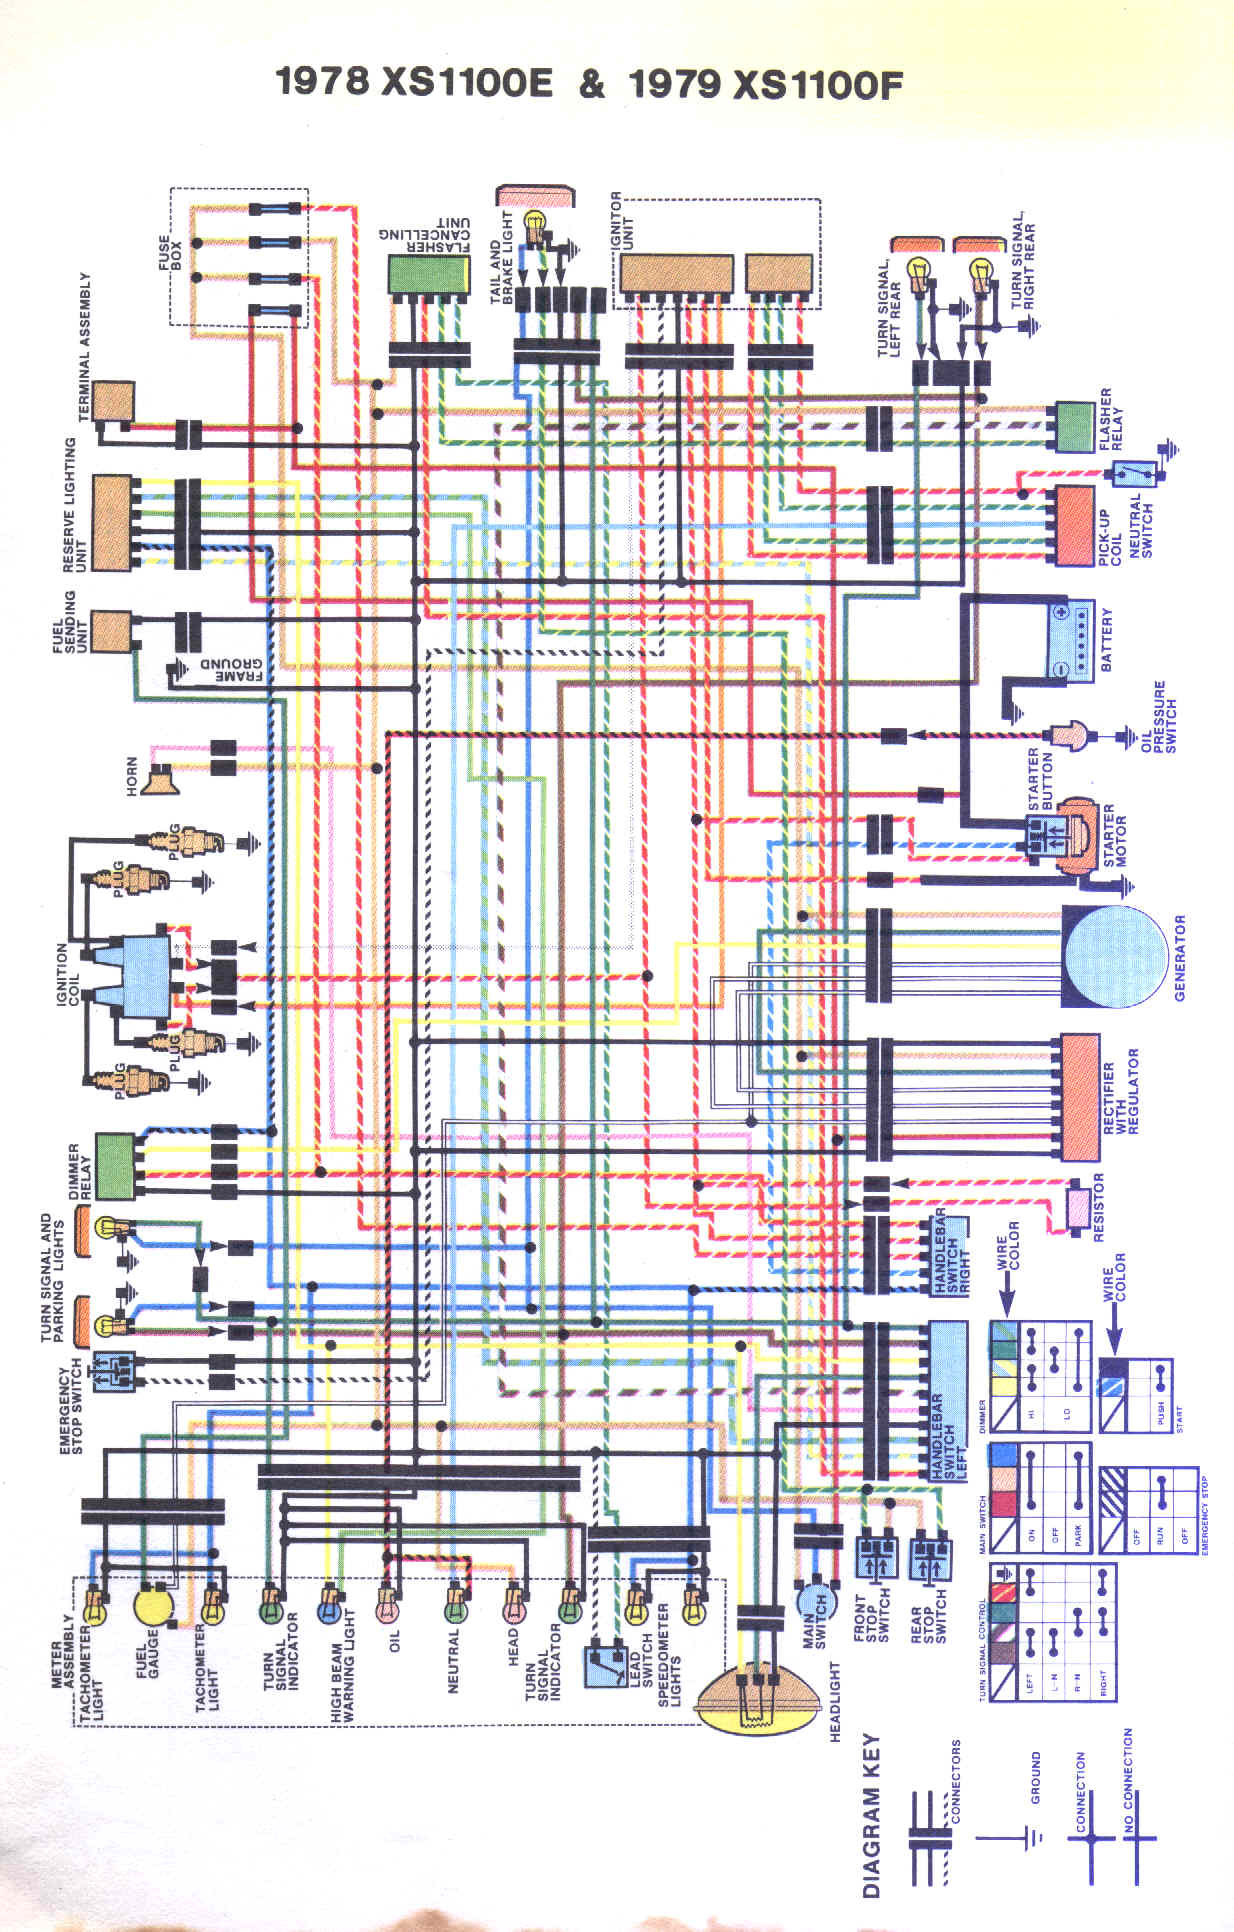 xs1100 wiring diagram wiring schematic diagram 80 xs bare basic rewire xs11 com forums